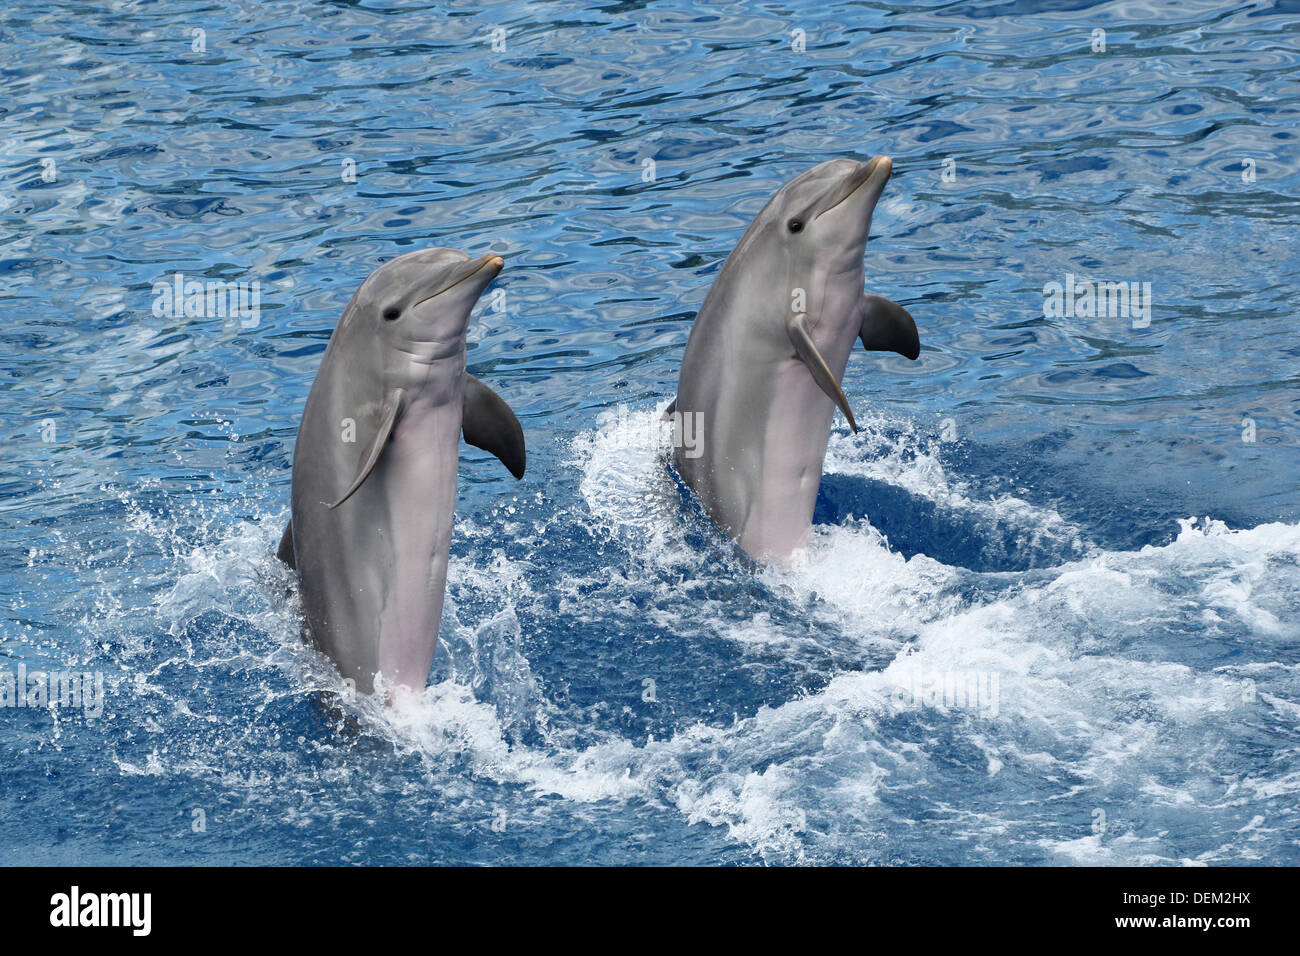 Bottle-nose dolphins moving backwards, supported by their tail at the Oceanografic Aquarium Marine Park & Zoo in Valencia, Spain - Stock Image